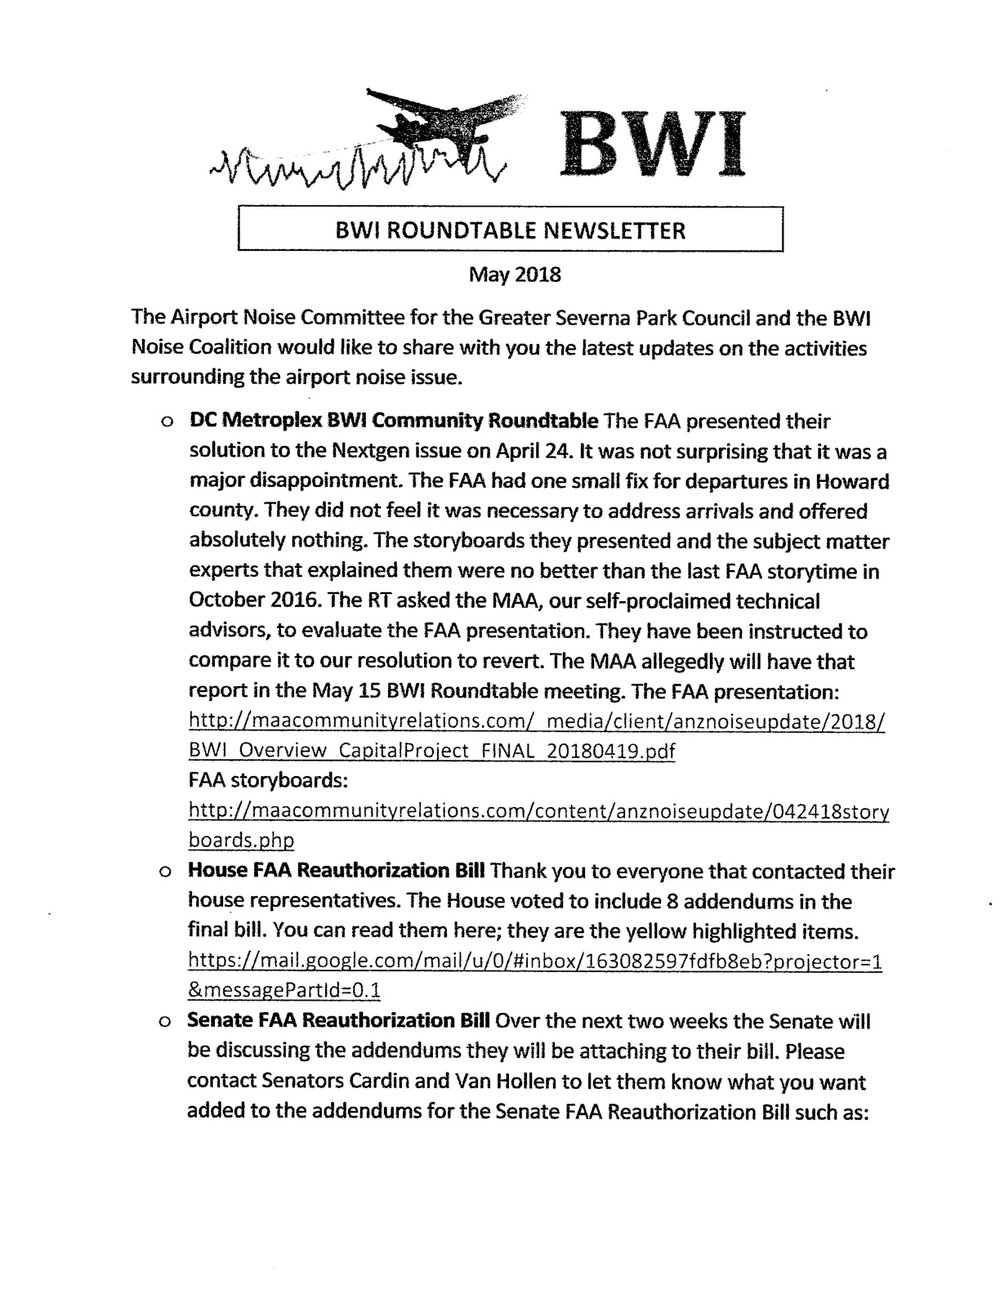 BWI-Roundtable-Newsletter-001.jpg